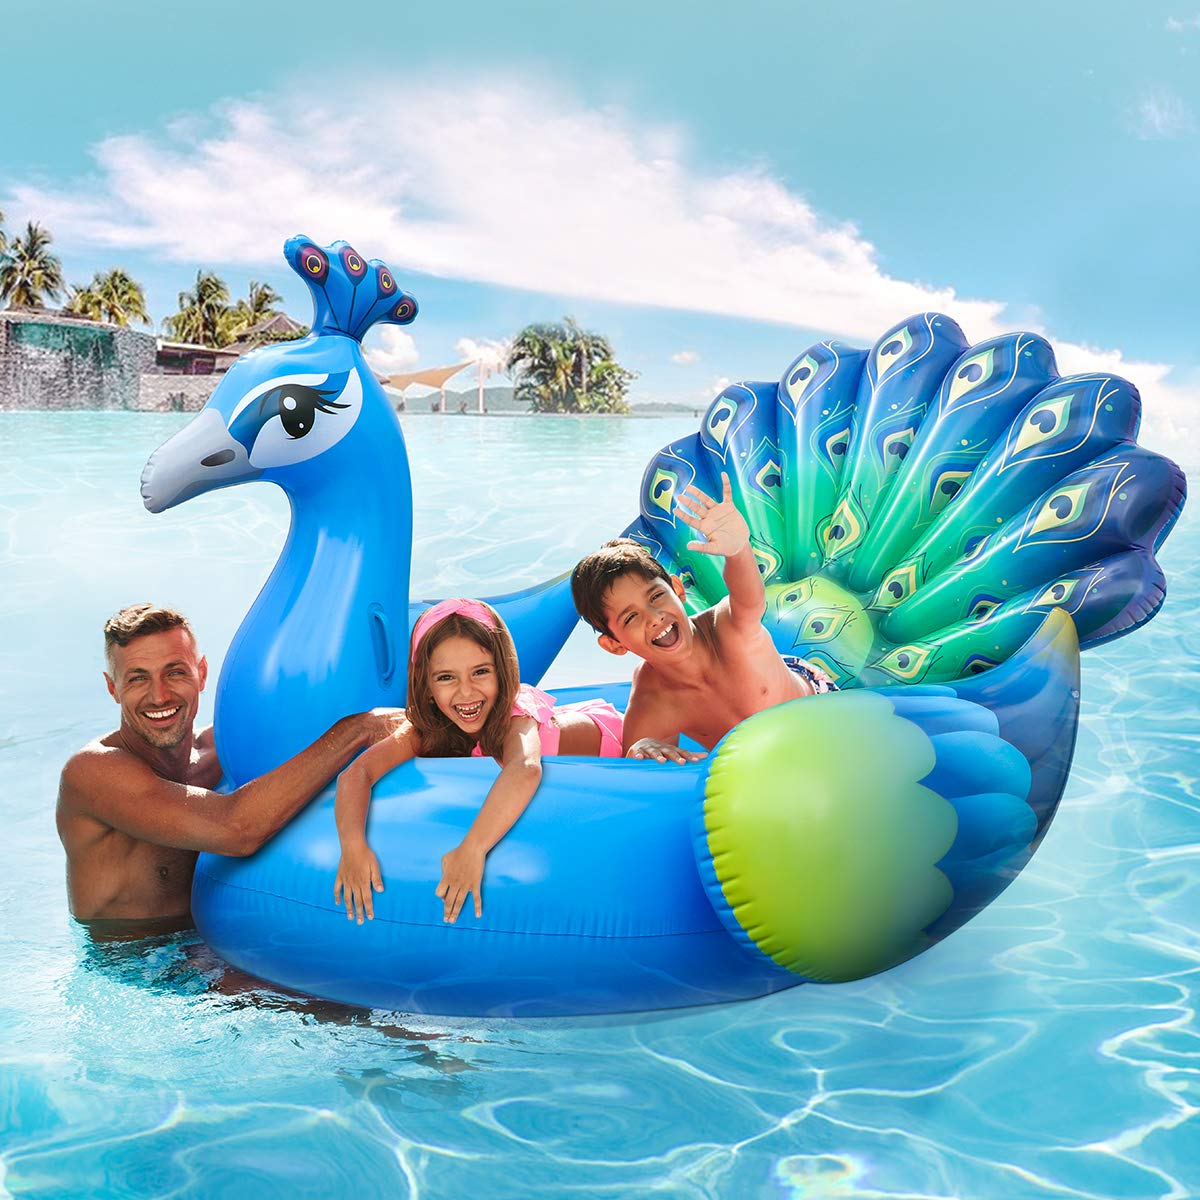 iBaseToy Giant Inflatable Peacock Pool Float, Pool Island, Beach Floaties for Swim Pool Party Toy Summer Pool Raft Pool Float for Adults & Kids -78.74''x 74.8''x 56.29''